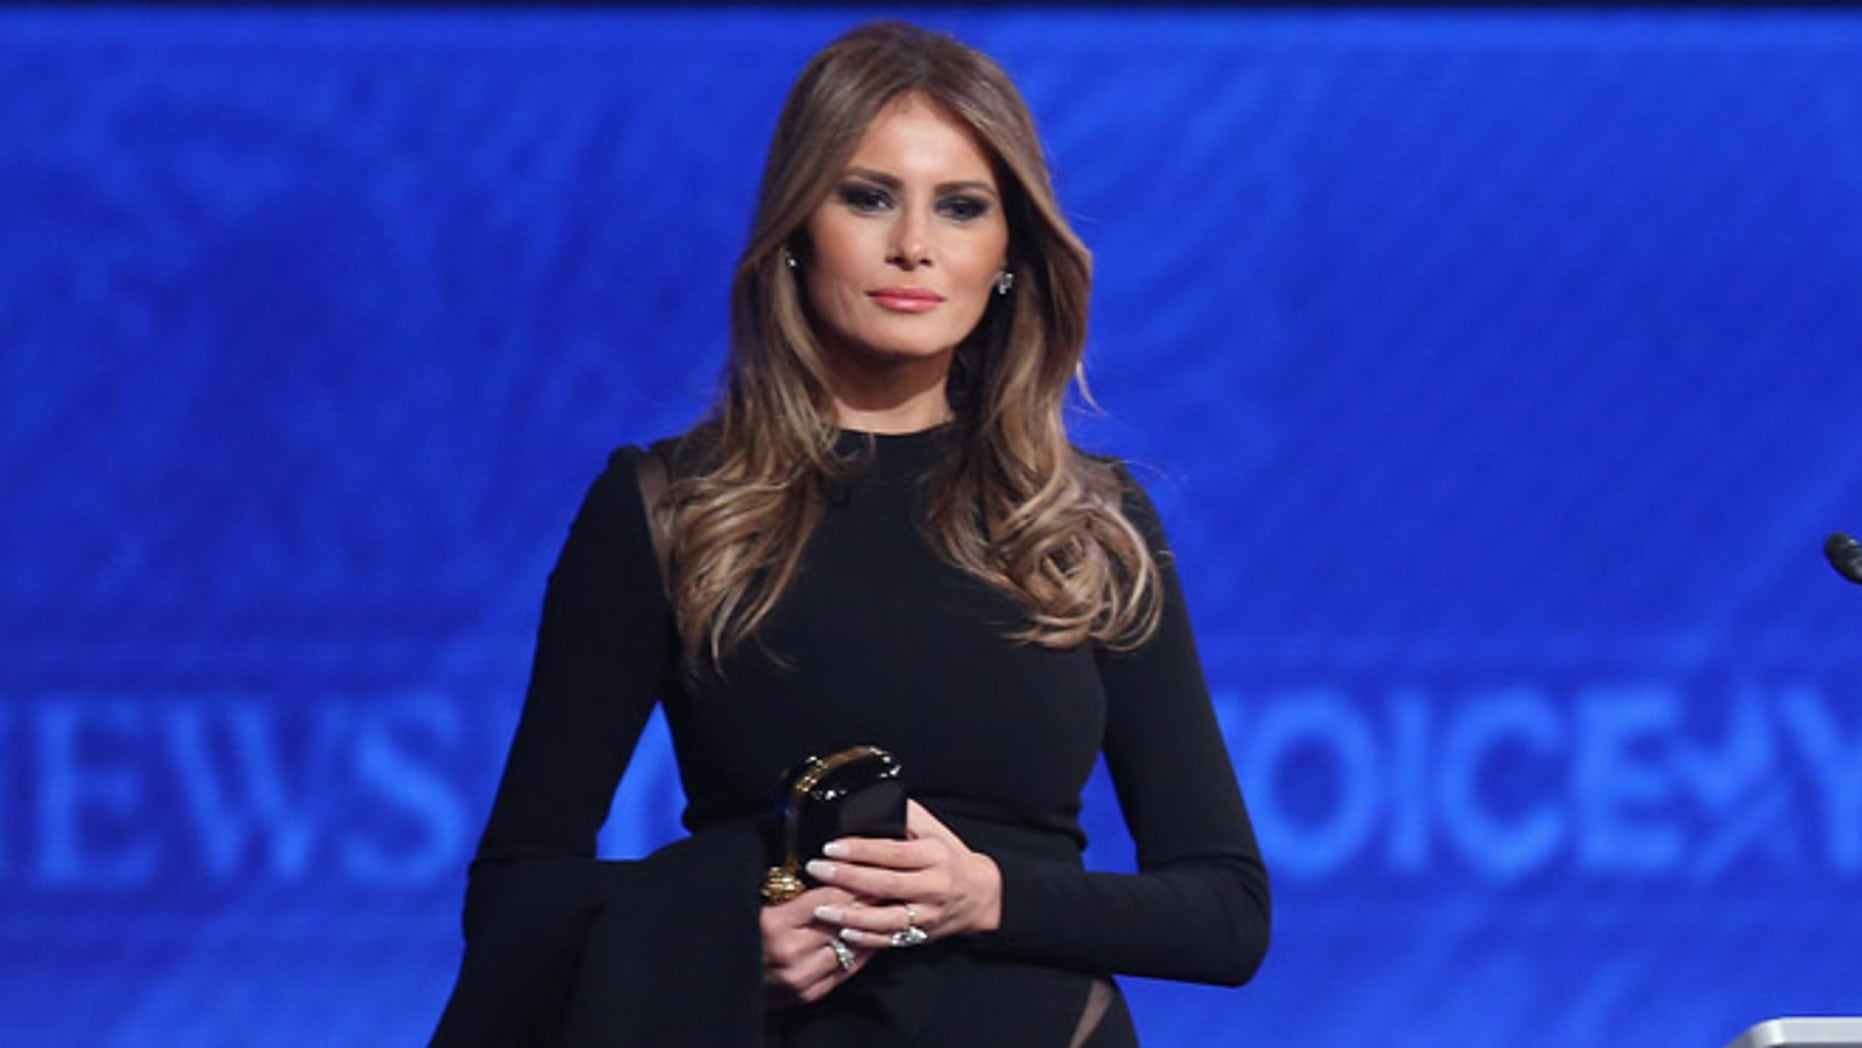 MANCHESTER, NH - FEBRUARY 06:  Melania Trump, wife of Republican presidential candidate Donald Trump, stands on stage following the Republican presidential debate at St. Anselm College February 6, 2016 in Manchester, New Hampshire. Sponsored by ABC News and the Independent Journal Review, this is the final televised debate before voters go to the polls for the New Hampshire primary on February 9.  (Photo by Joe Raedle/Getty Images)